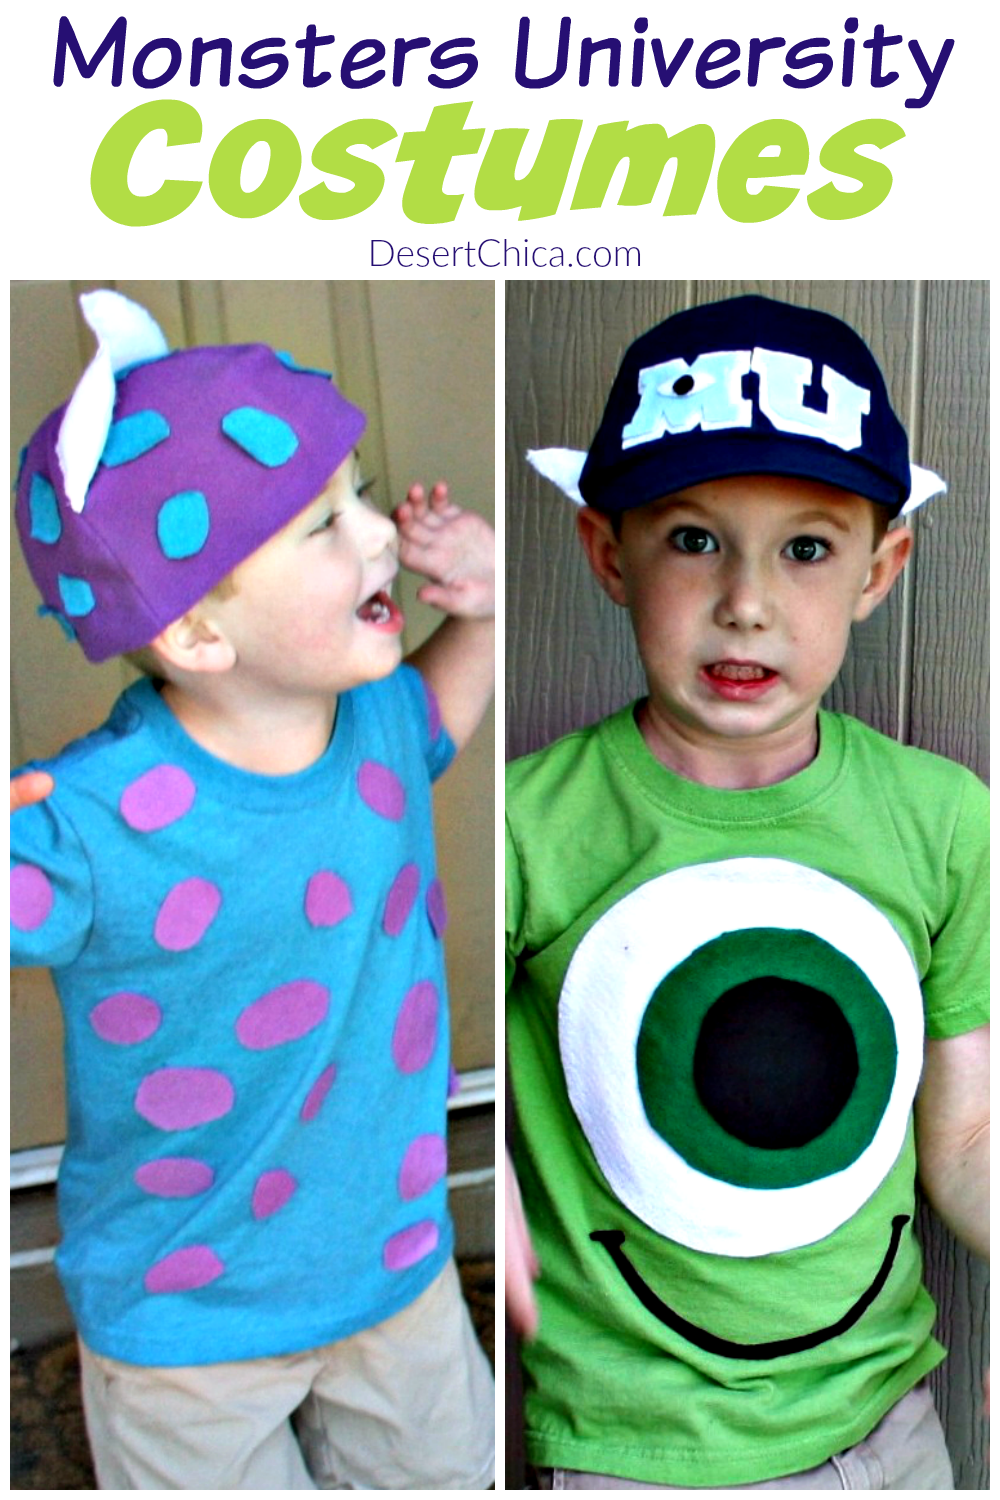 diy monsters university costumes | desert chica